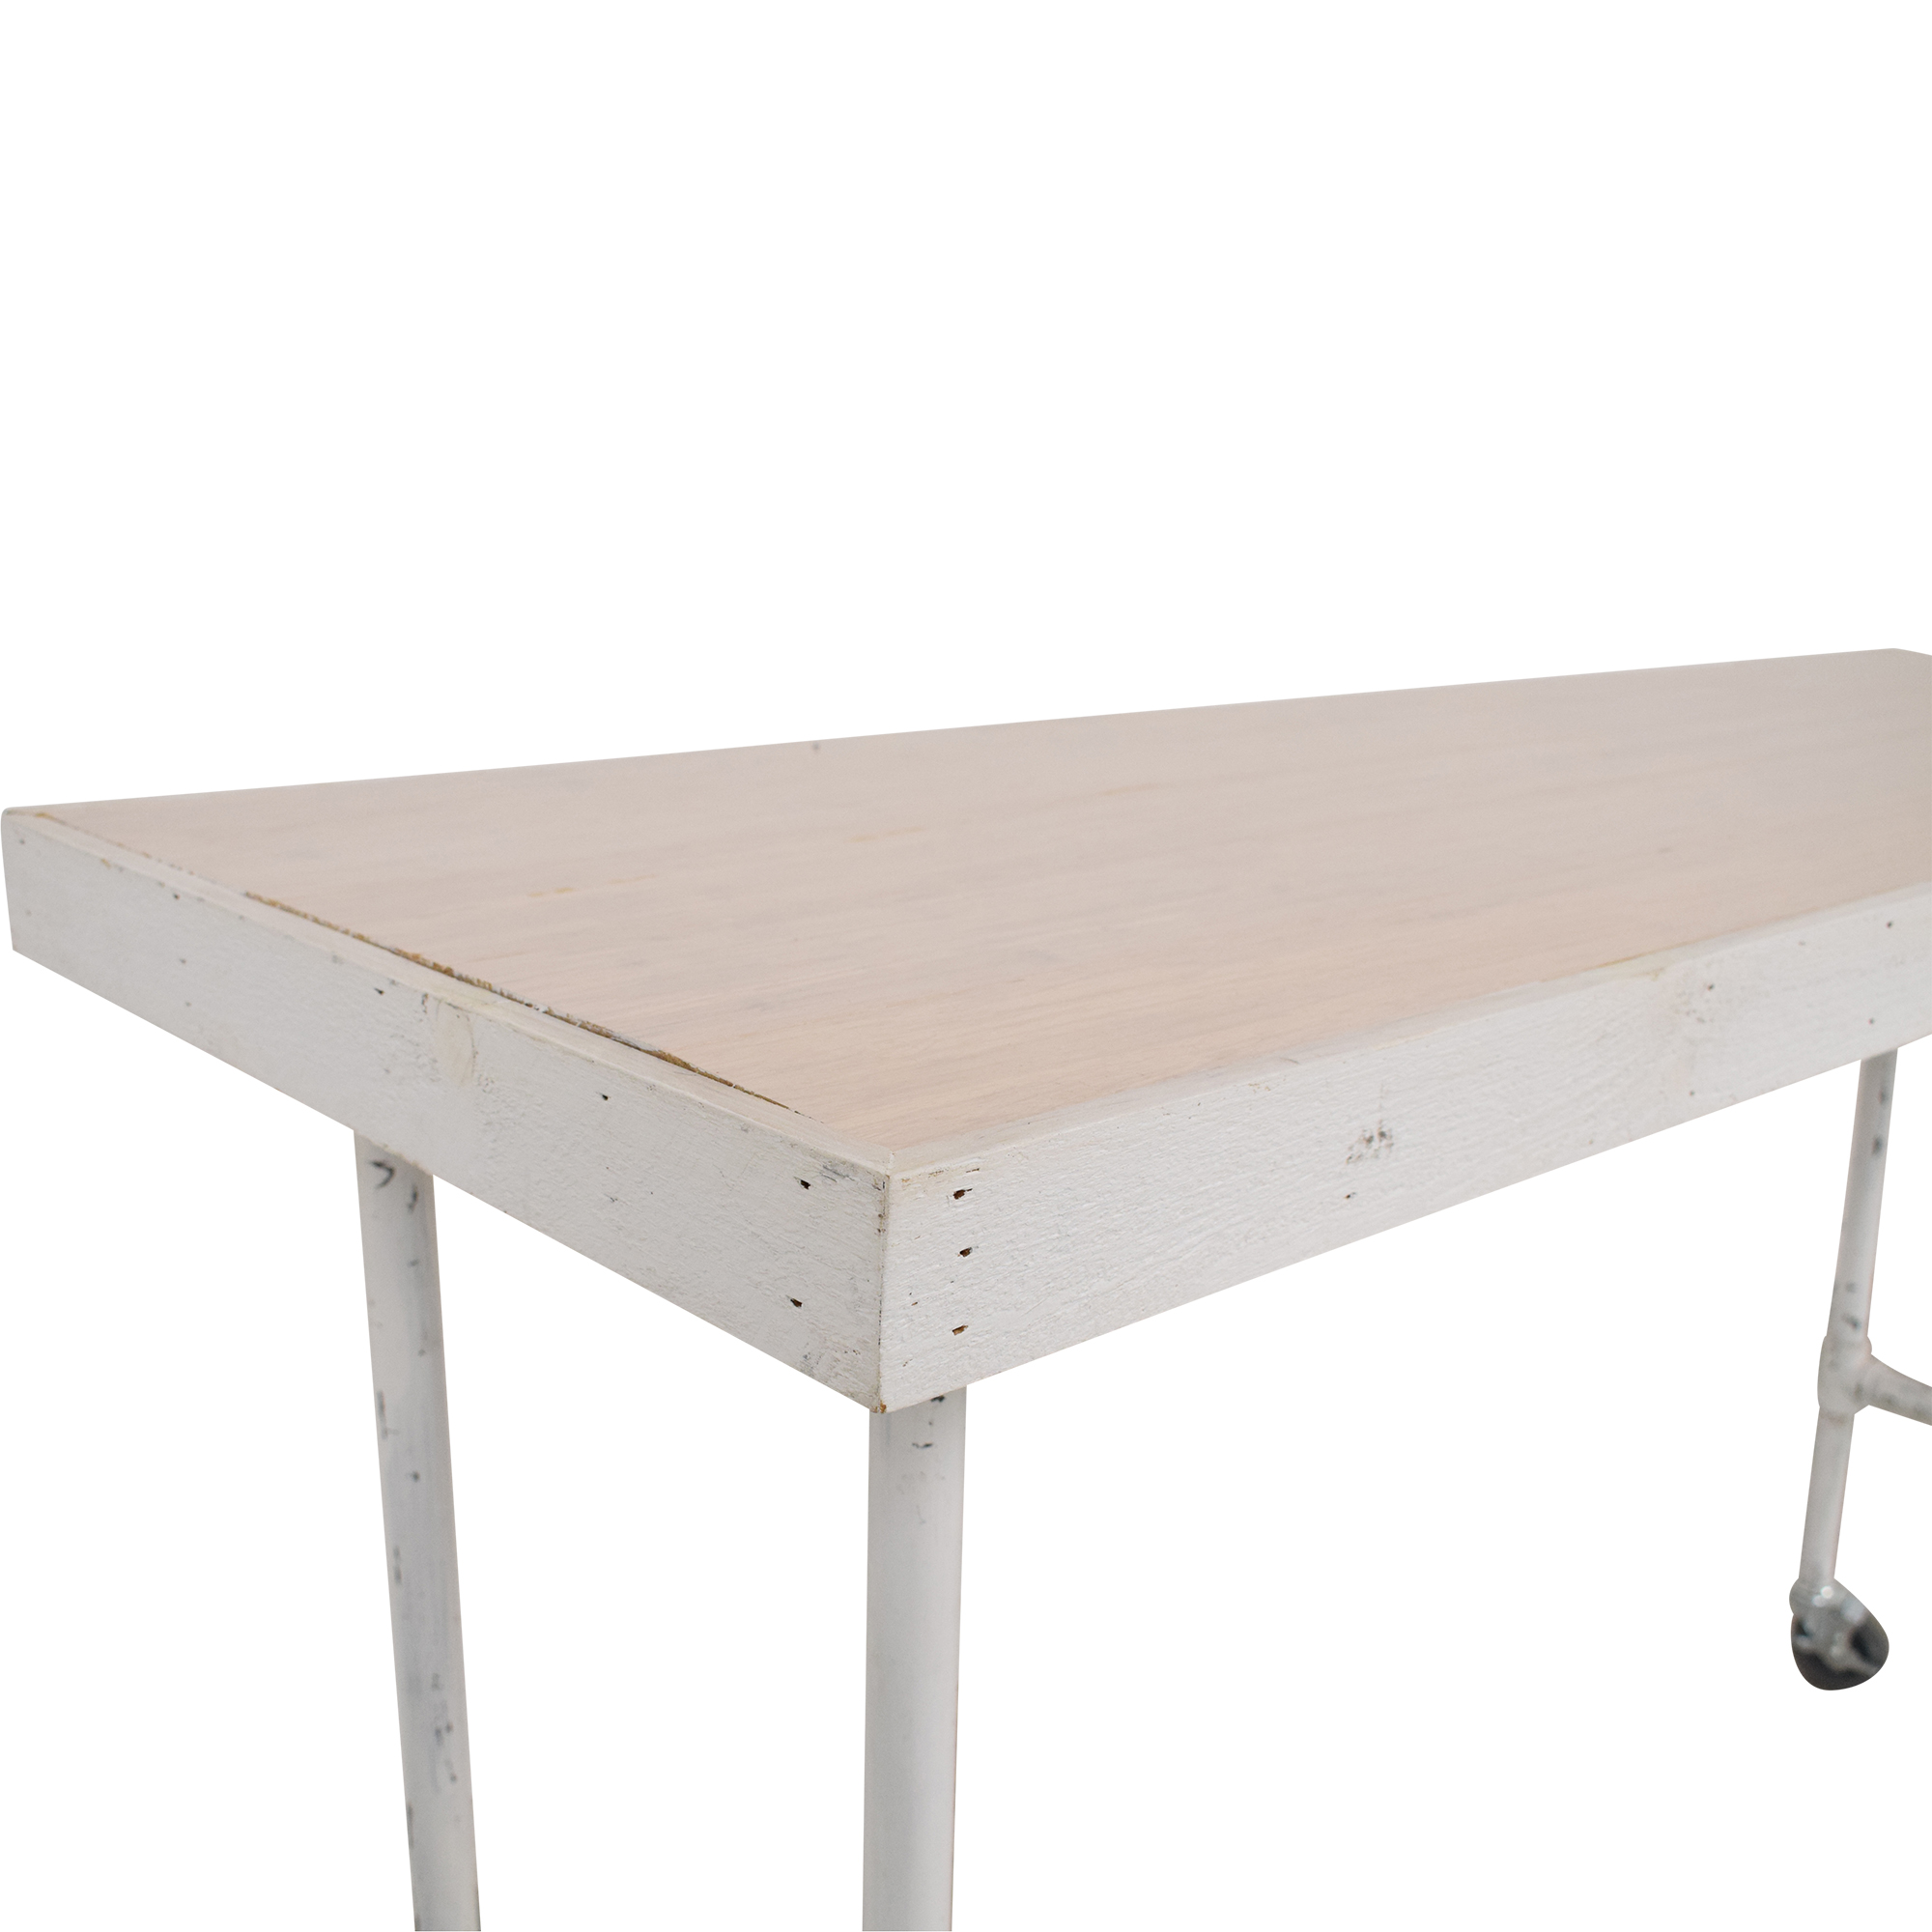 Work Table with Wheels used